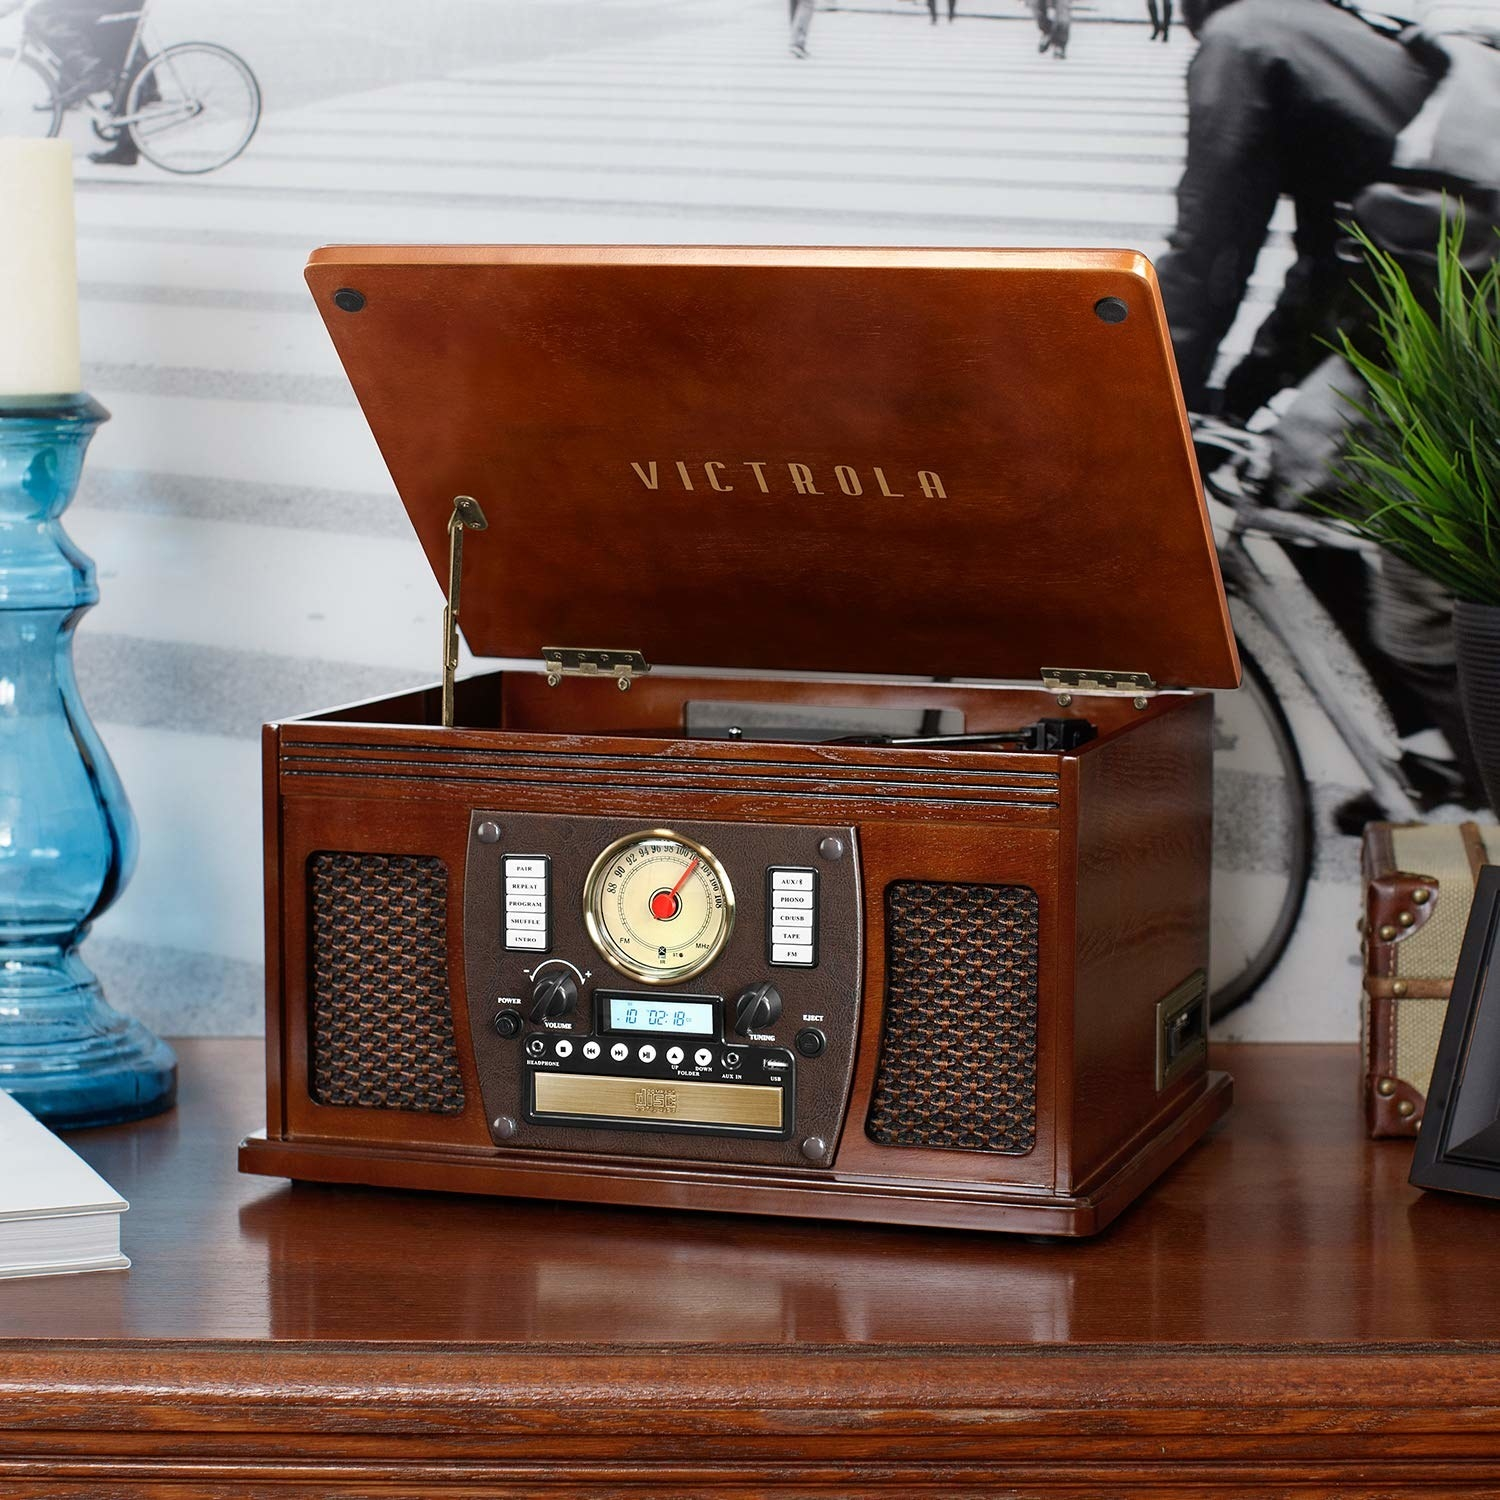 The retro music system with a hinged top record player